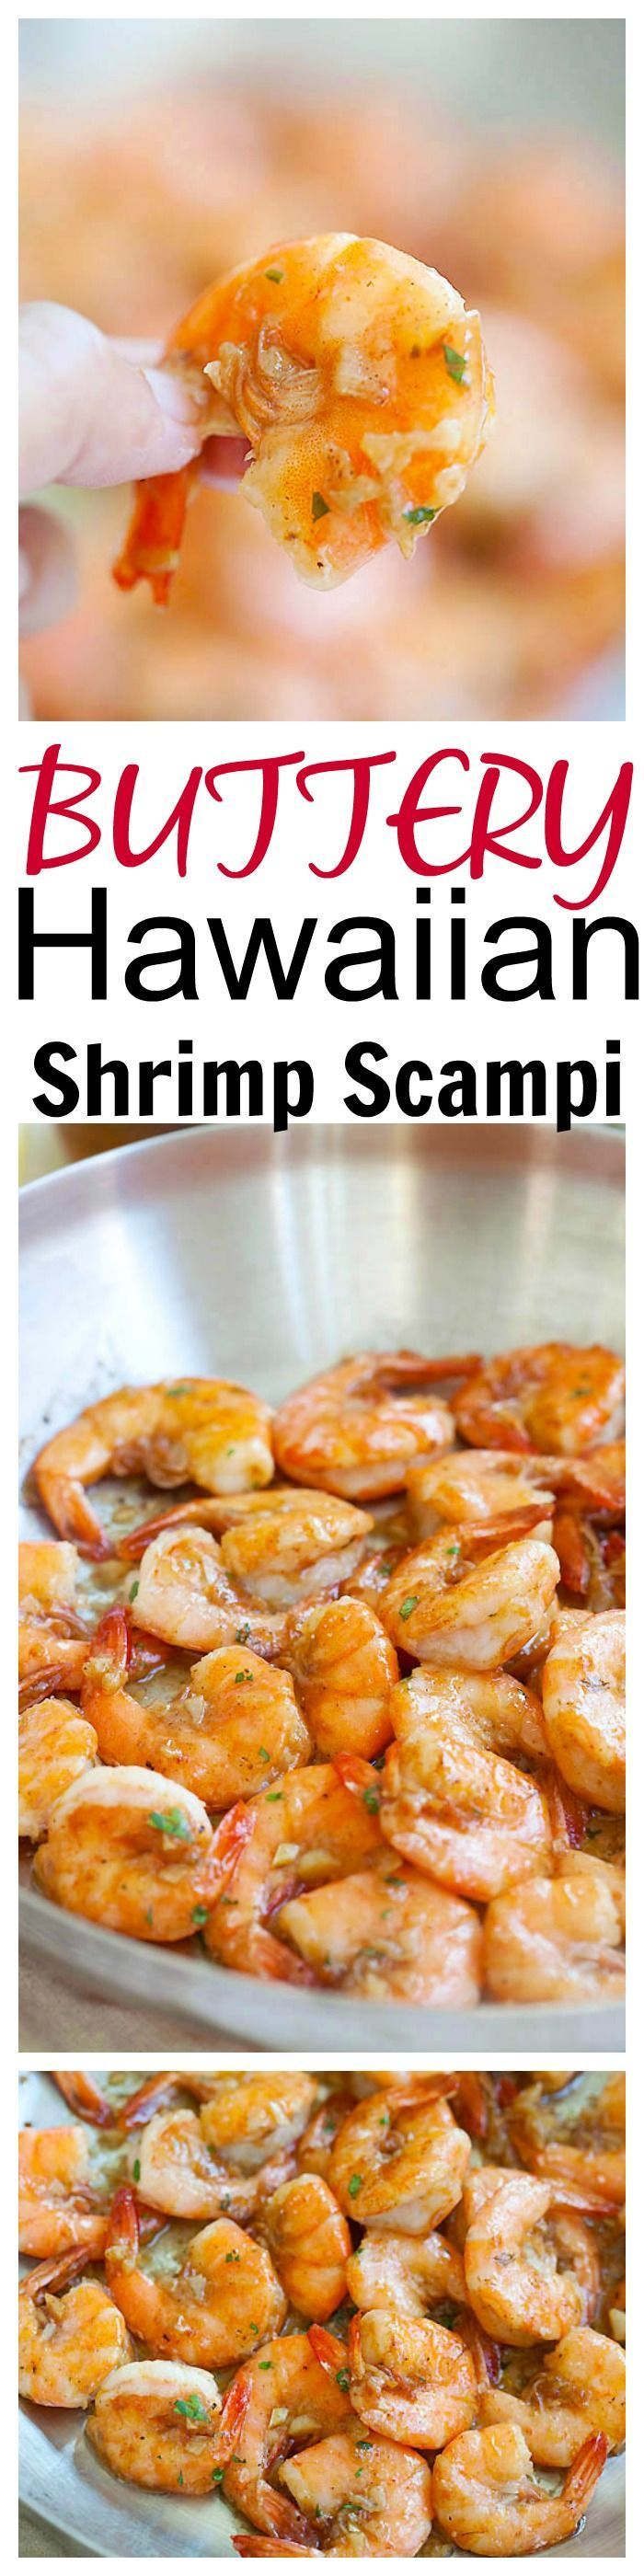 Super buttery and garlicky Hawaiian Shrimp Scampi, totally legit copycat famous Giovanni's shrimp scampi. Bring Hawaii home with my super easy recipe   http://rasamalaysia.com